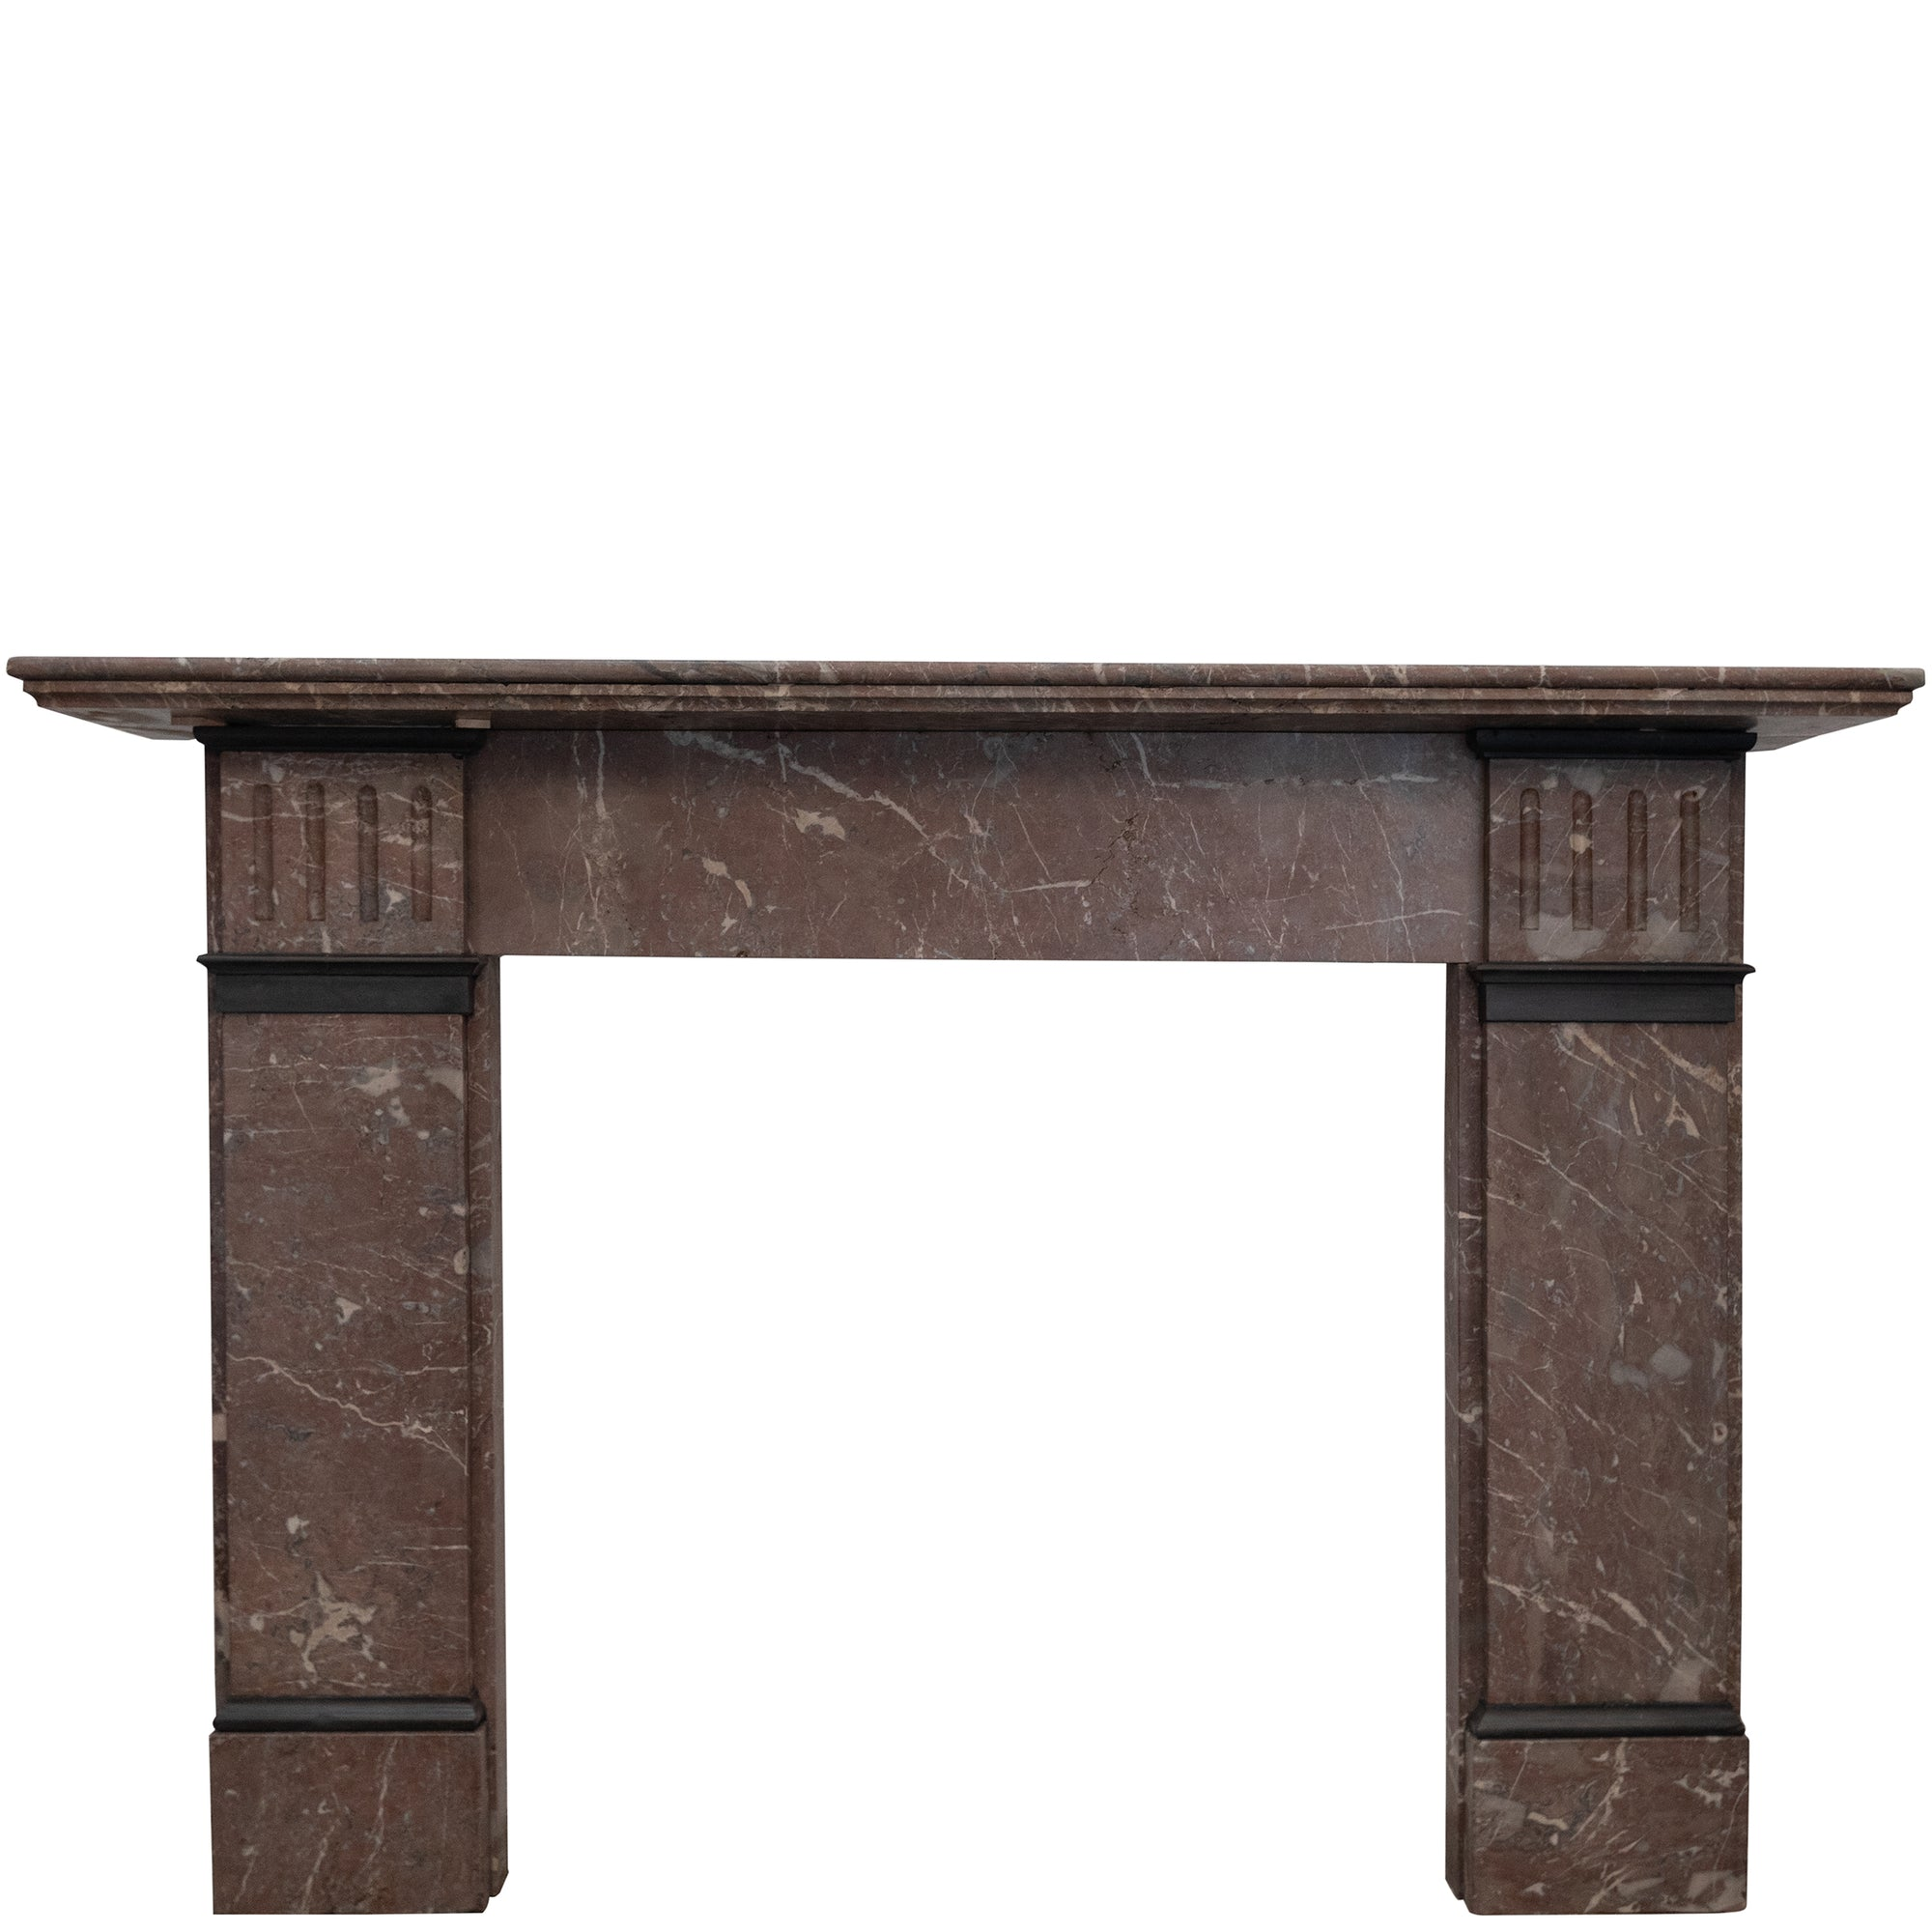 Antique Edwardian Rouge Royal Marble Fireplace Surround | The Architectural Forum